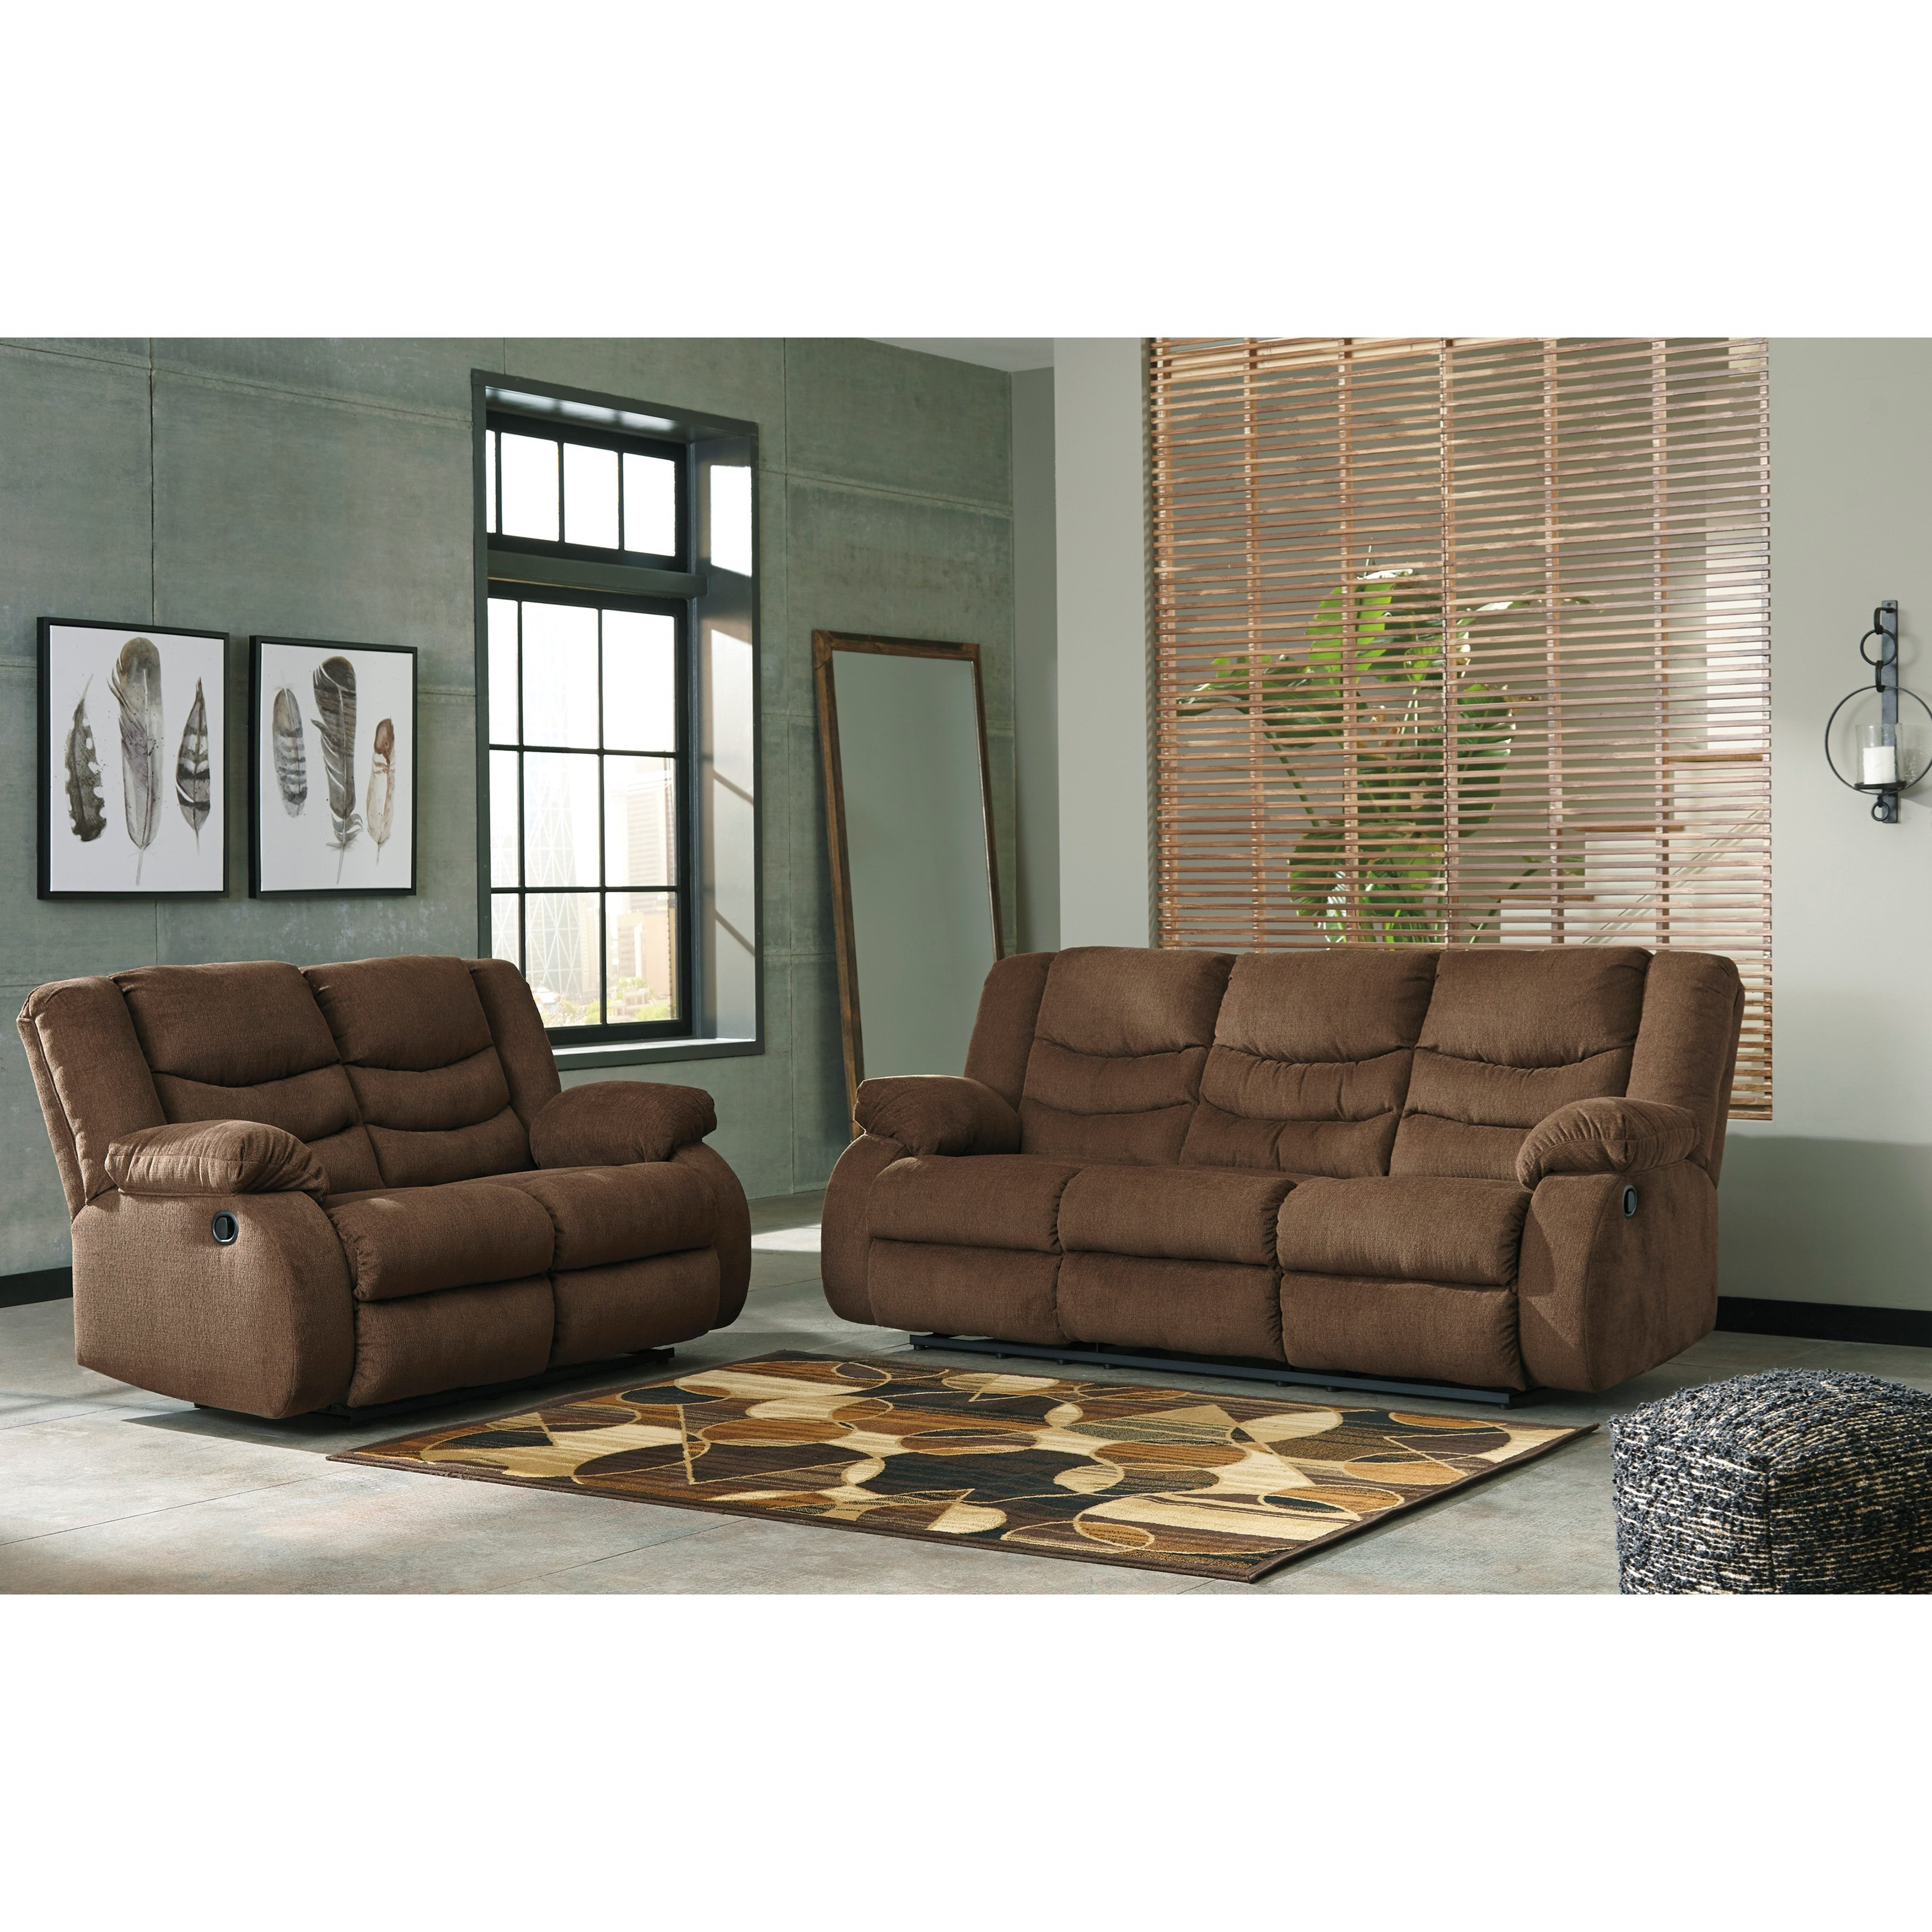 Signature Design By Ashley Tulen Reclining Living Room Group Boulevard Home Furnishings